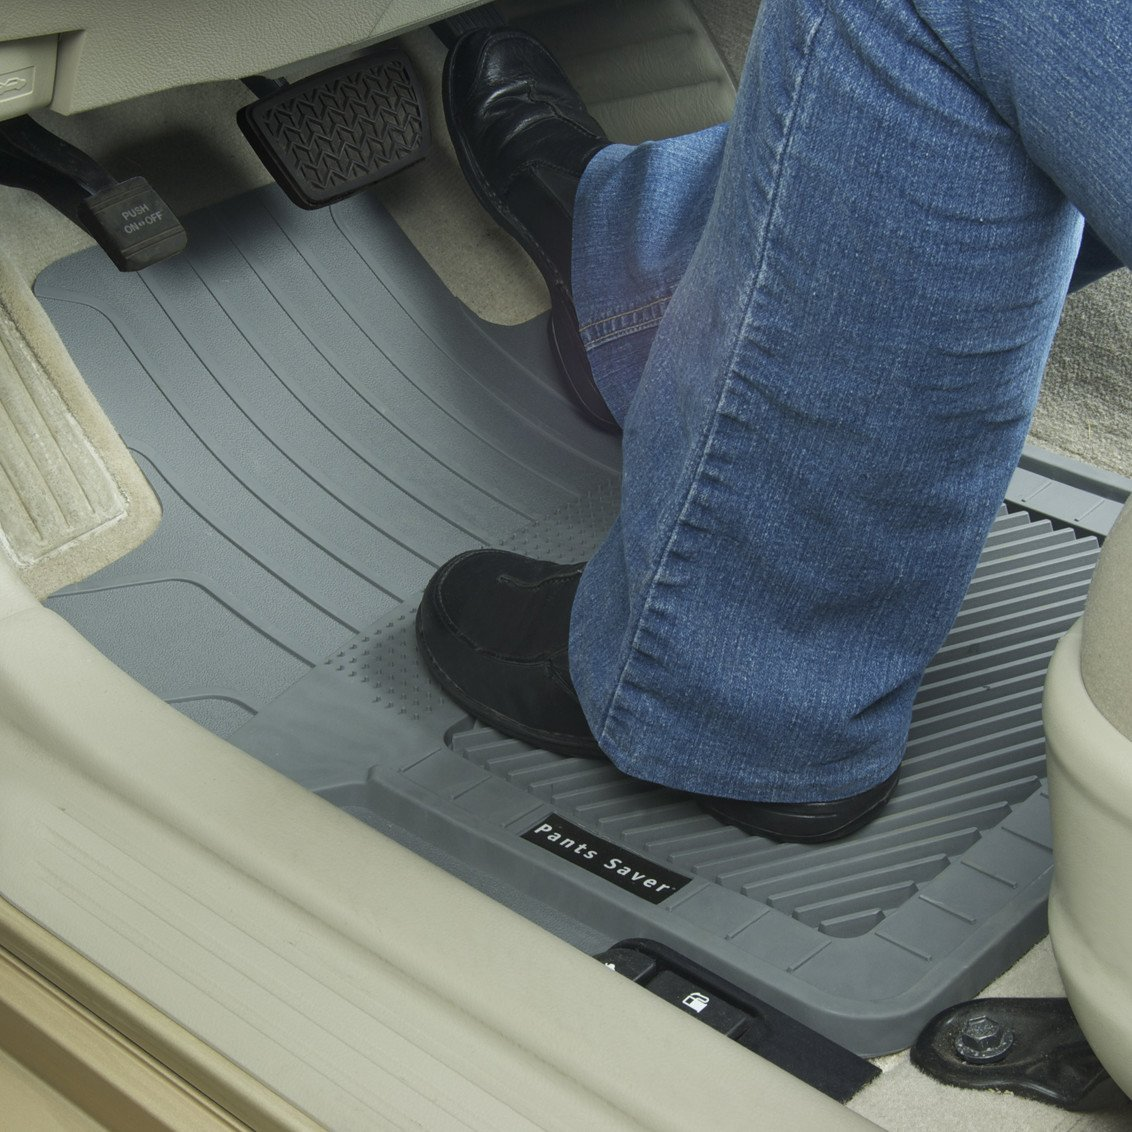 PantsSaver 1702132 Car Mat Gray